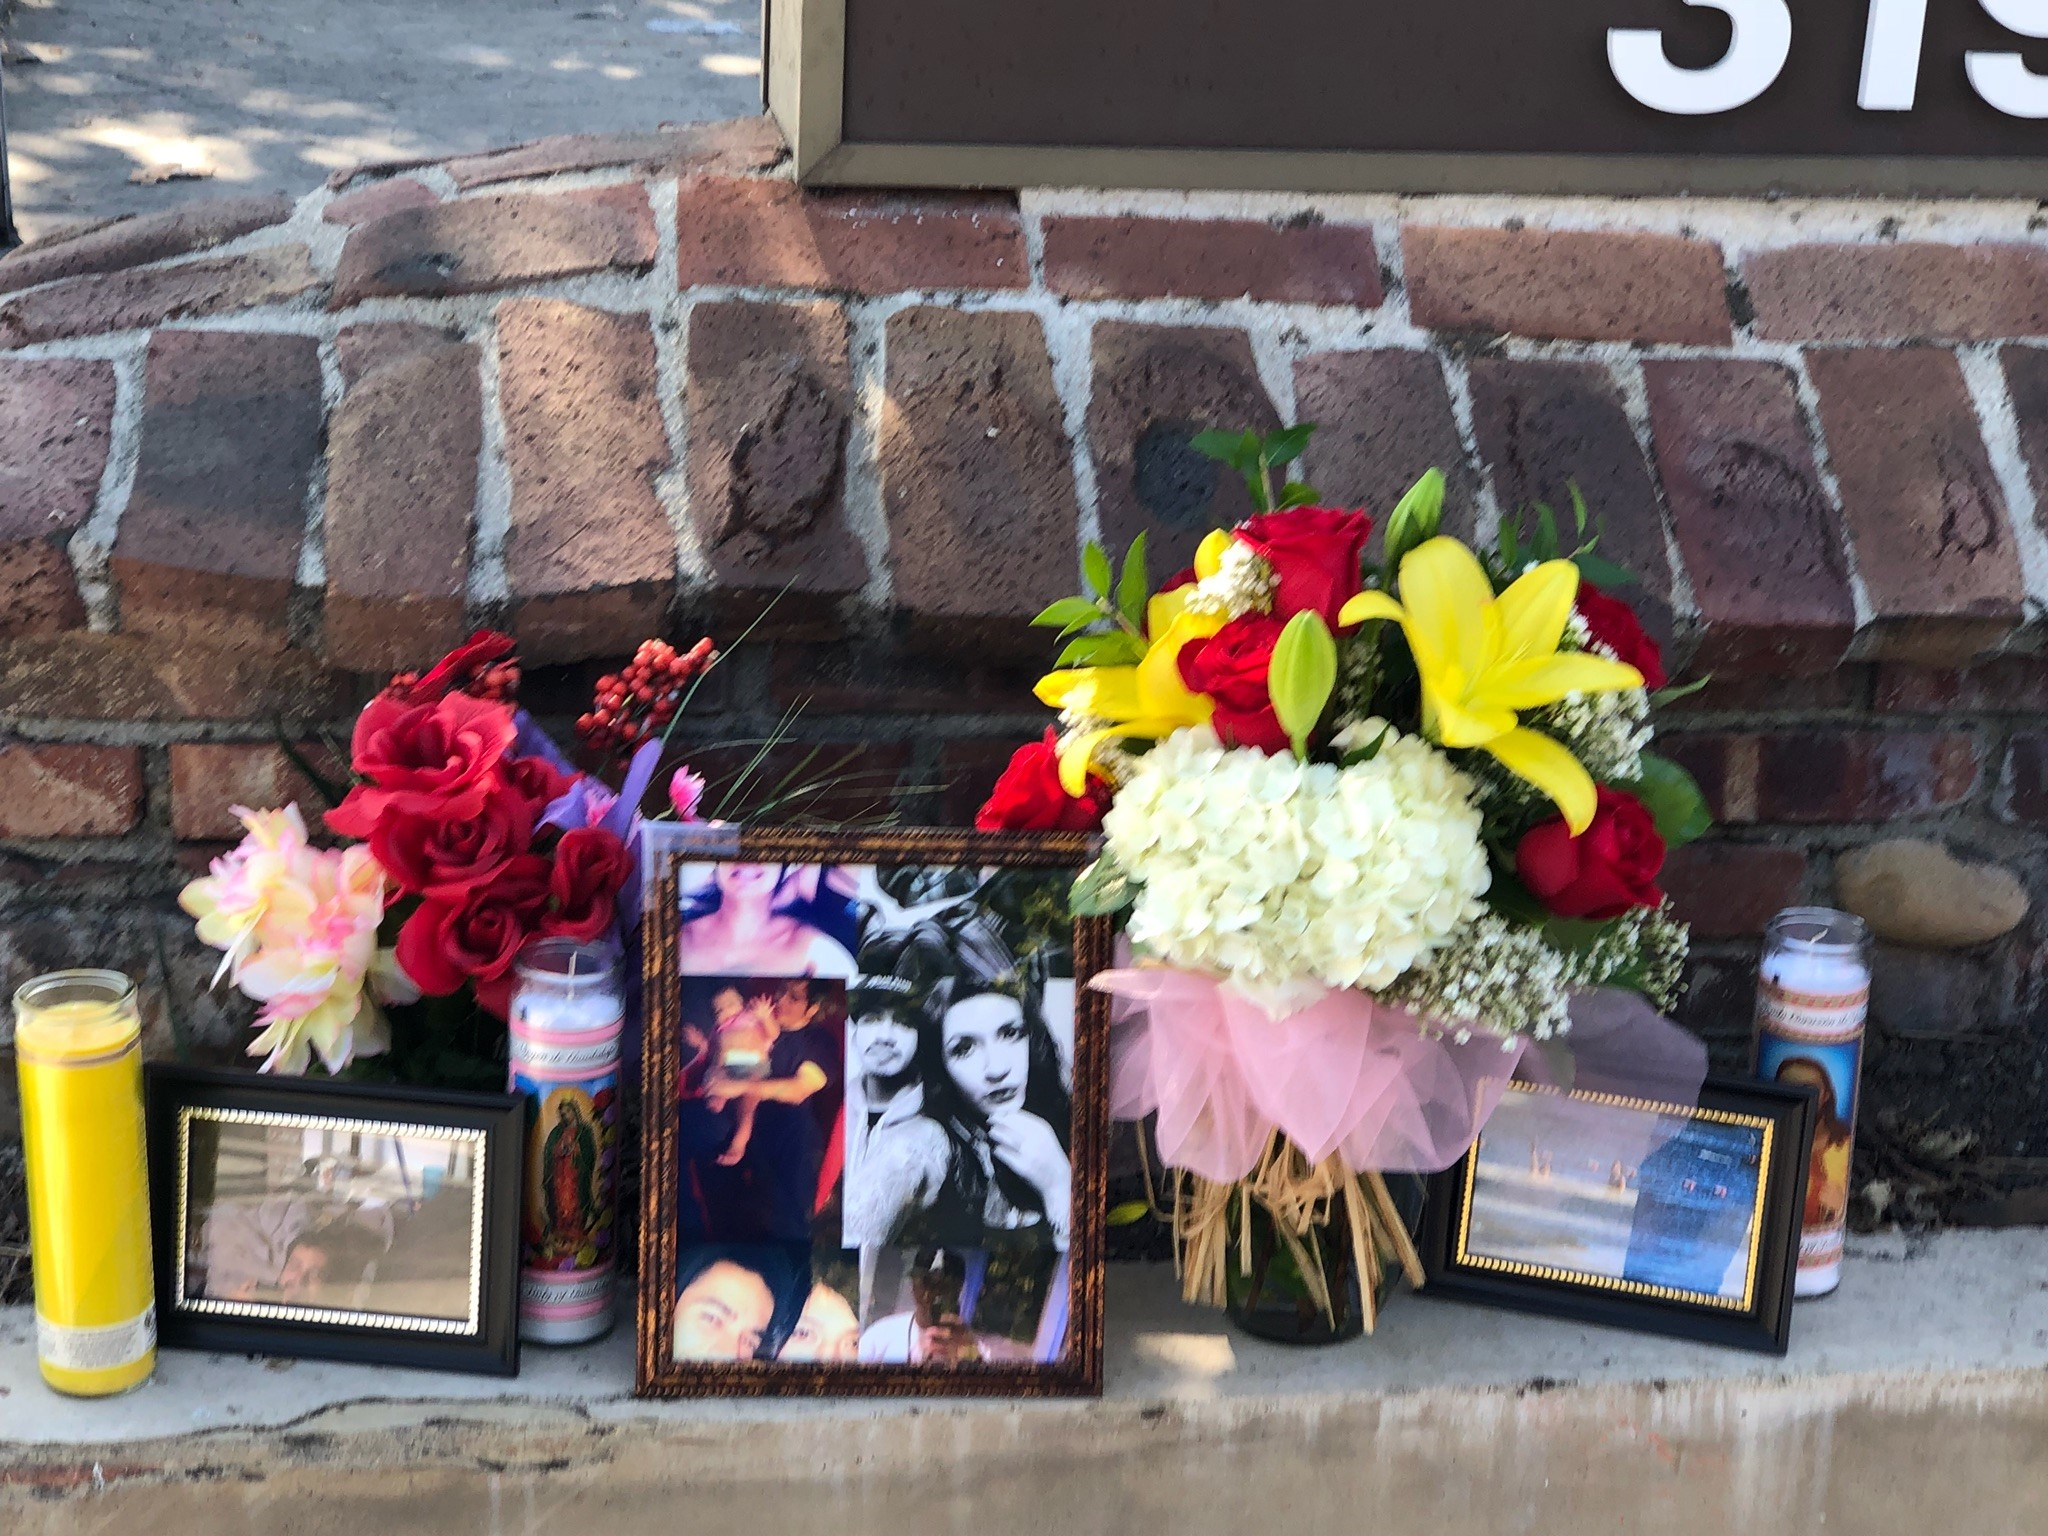 A memorial honoring a San Juan Capistrano man who died after being Tasered sits in the 32000 block of Camino Capistrano. Photo: Anthony Ramirez